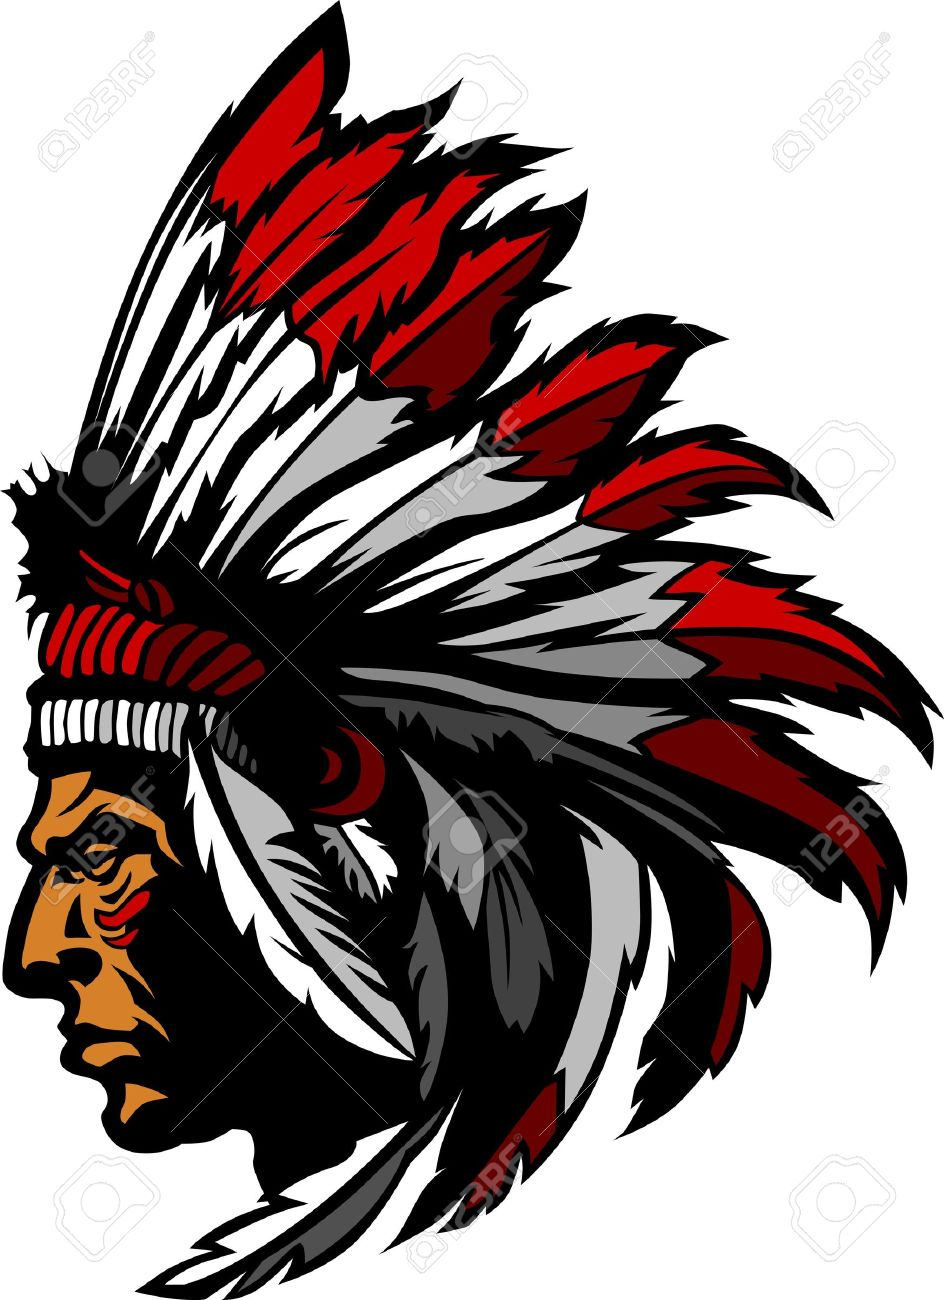 indian chief mascot head graphic royalty free cliparts vectors and rh 123rf com